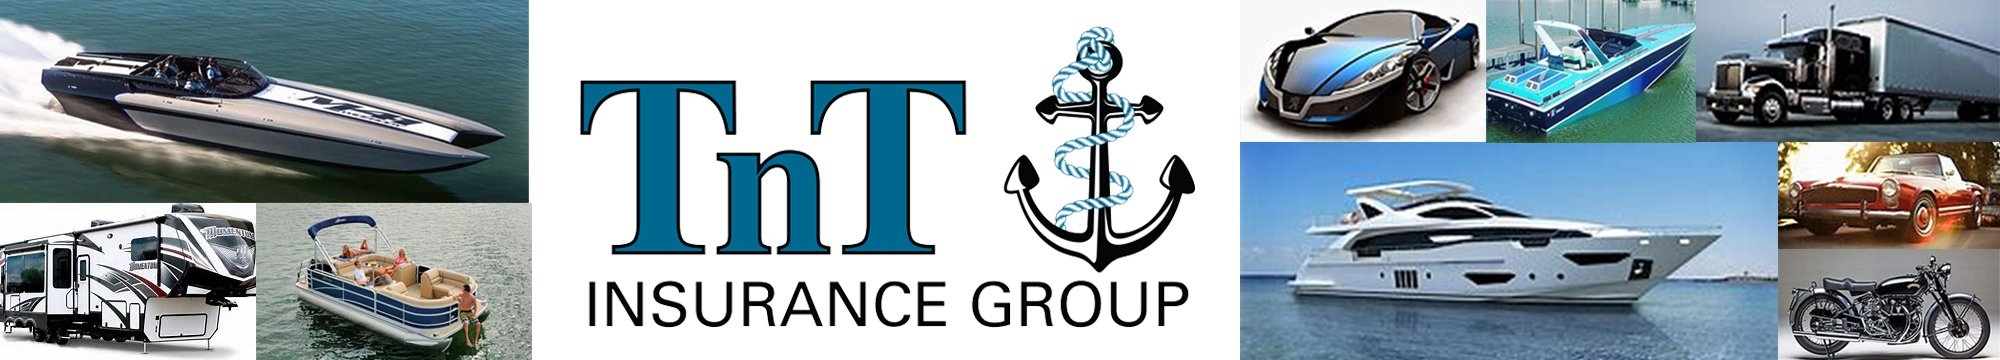 TnT Insurance Group